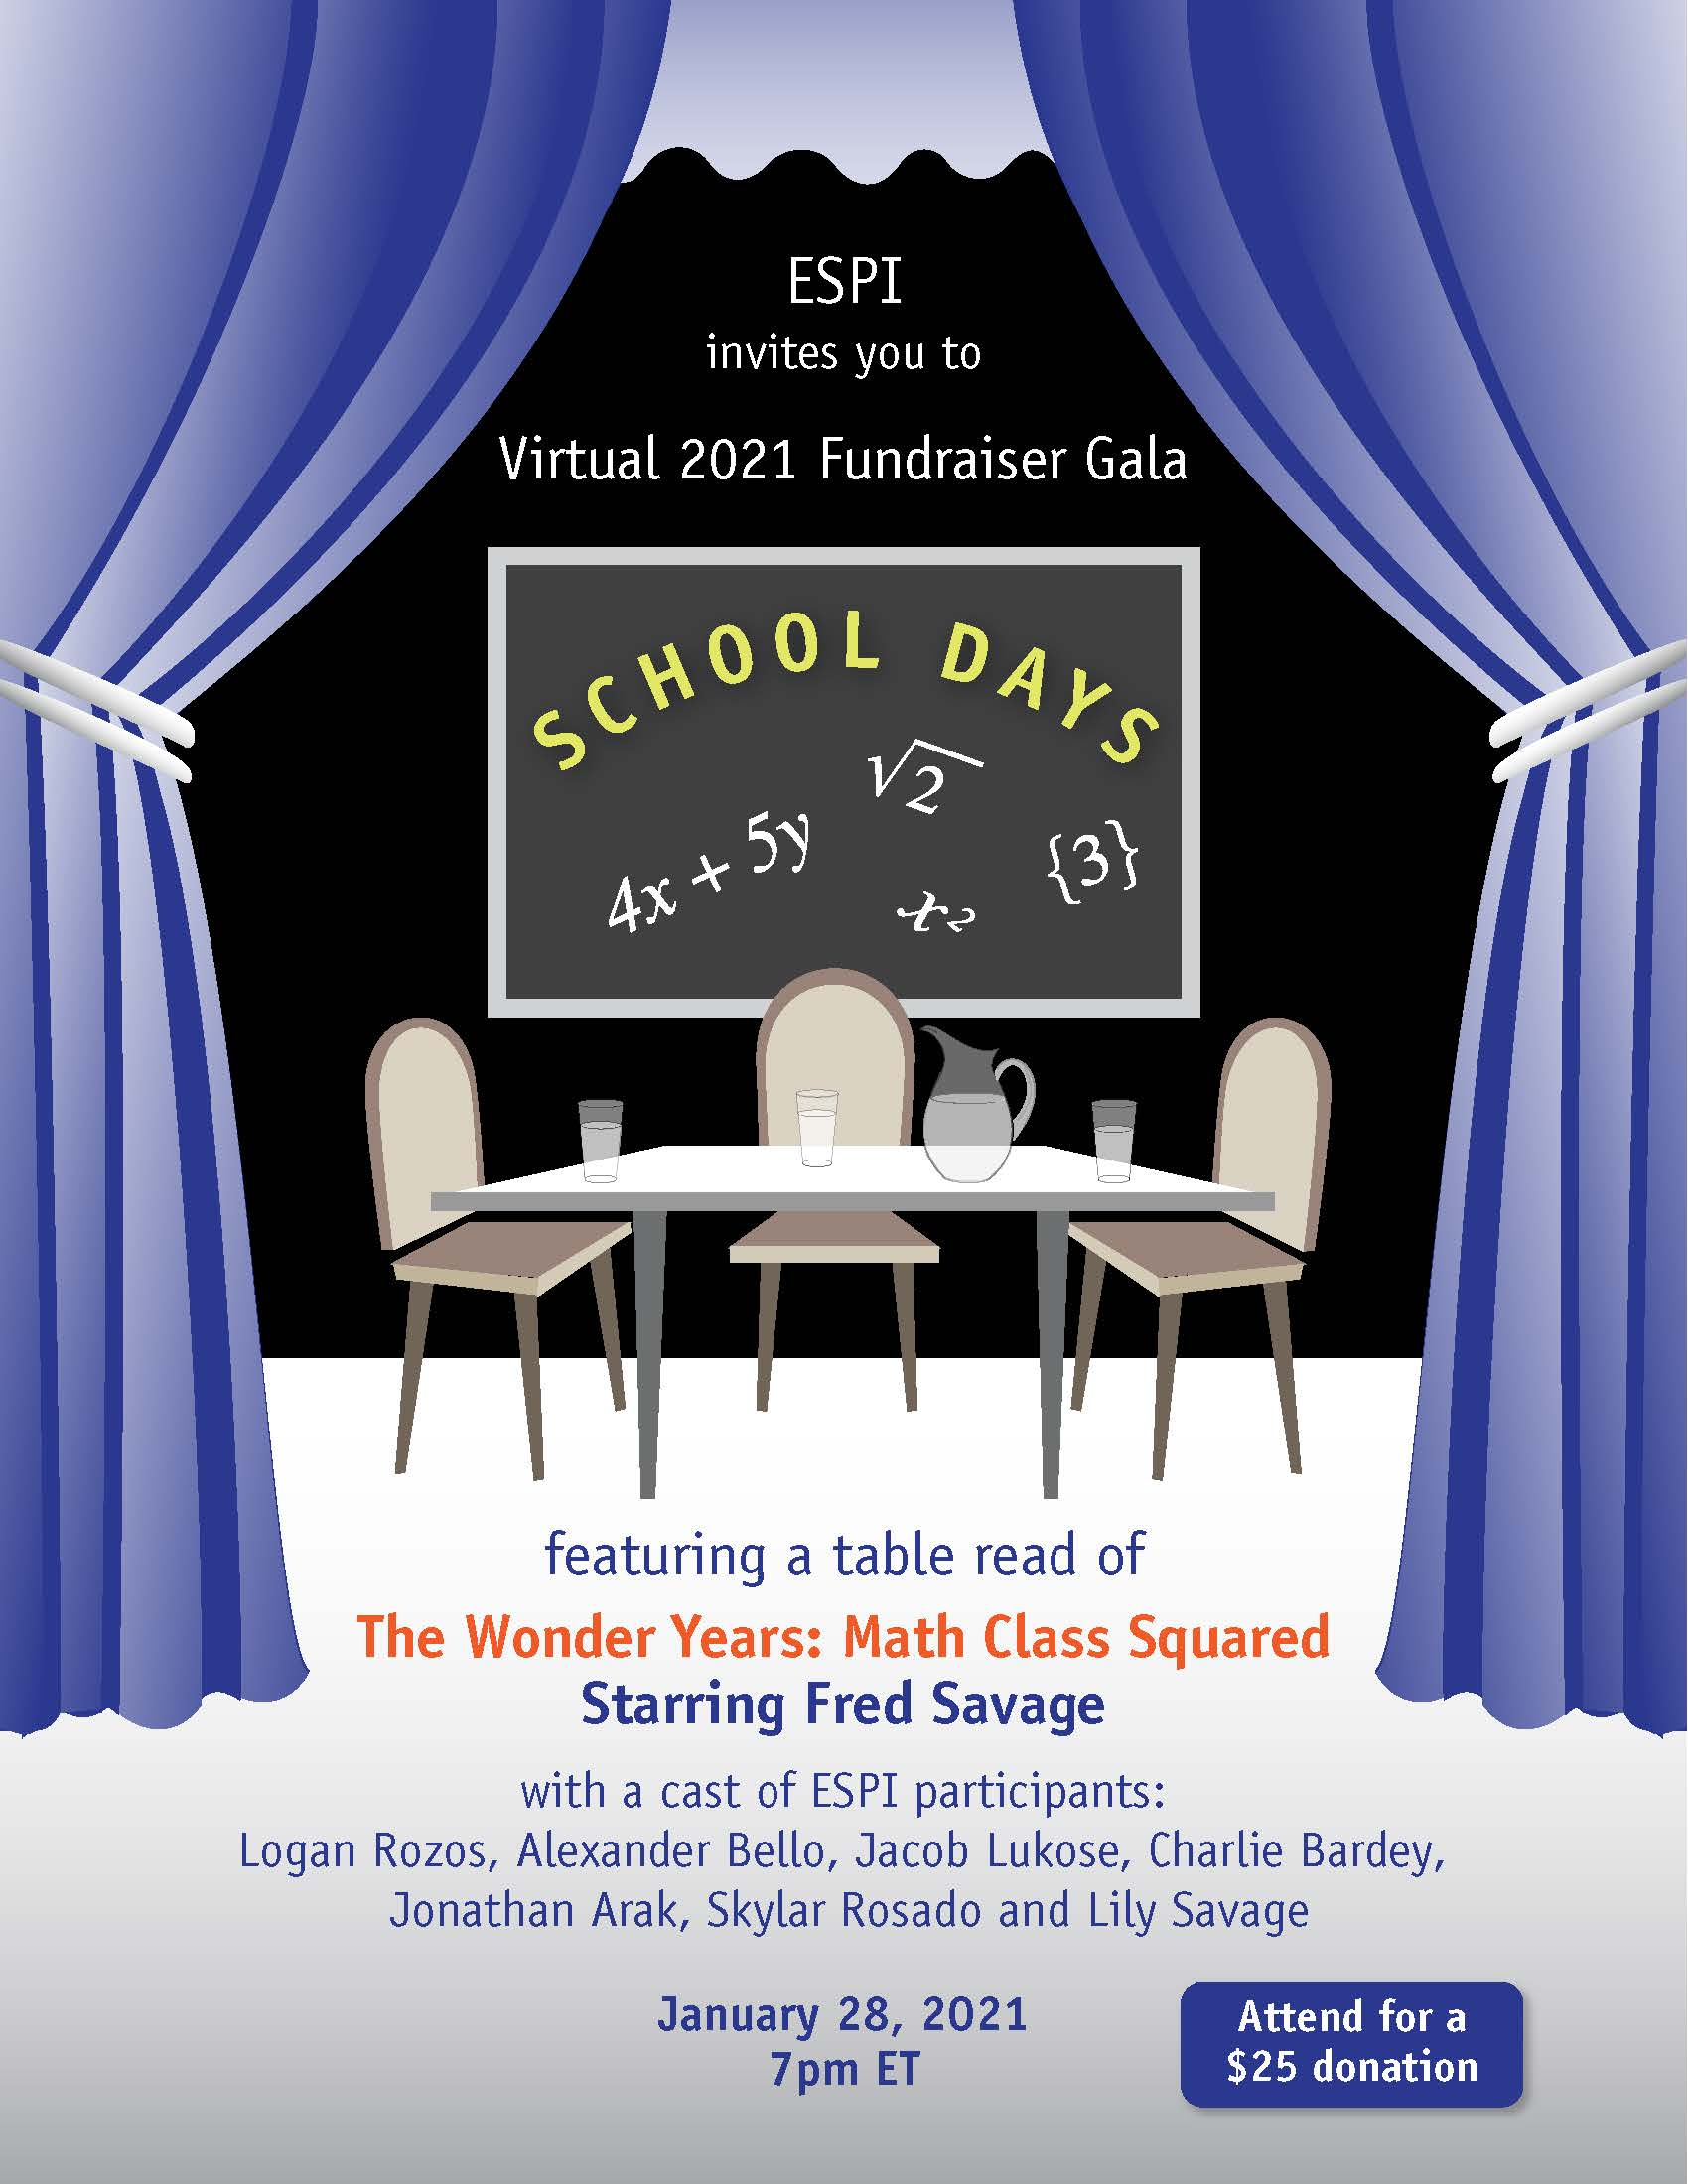 School Days Virtual 2021 Fundraiser Gala